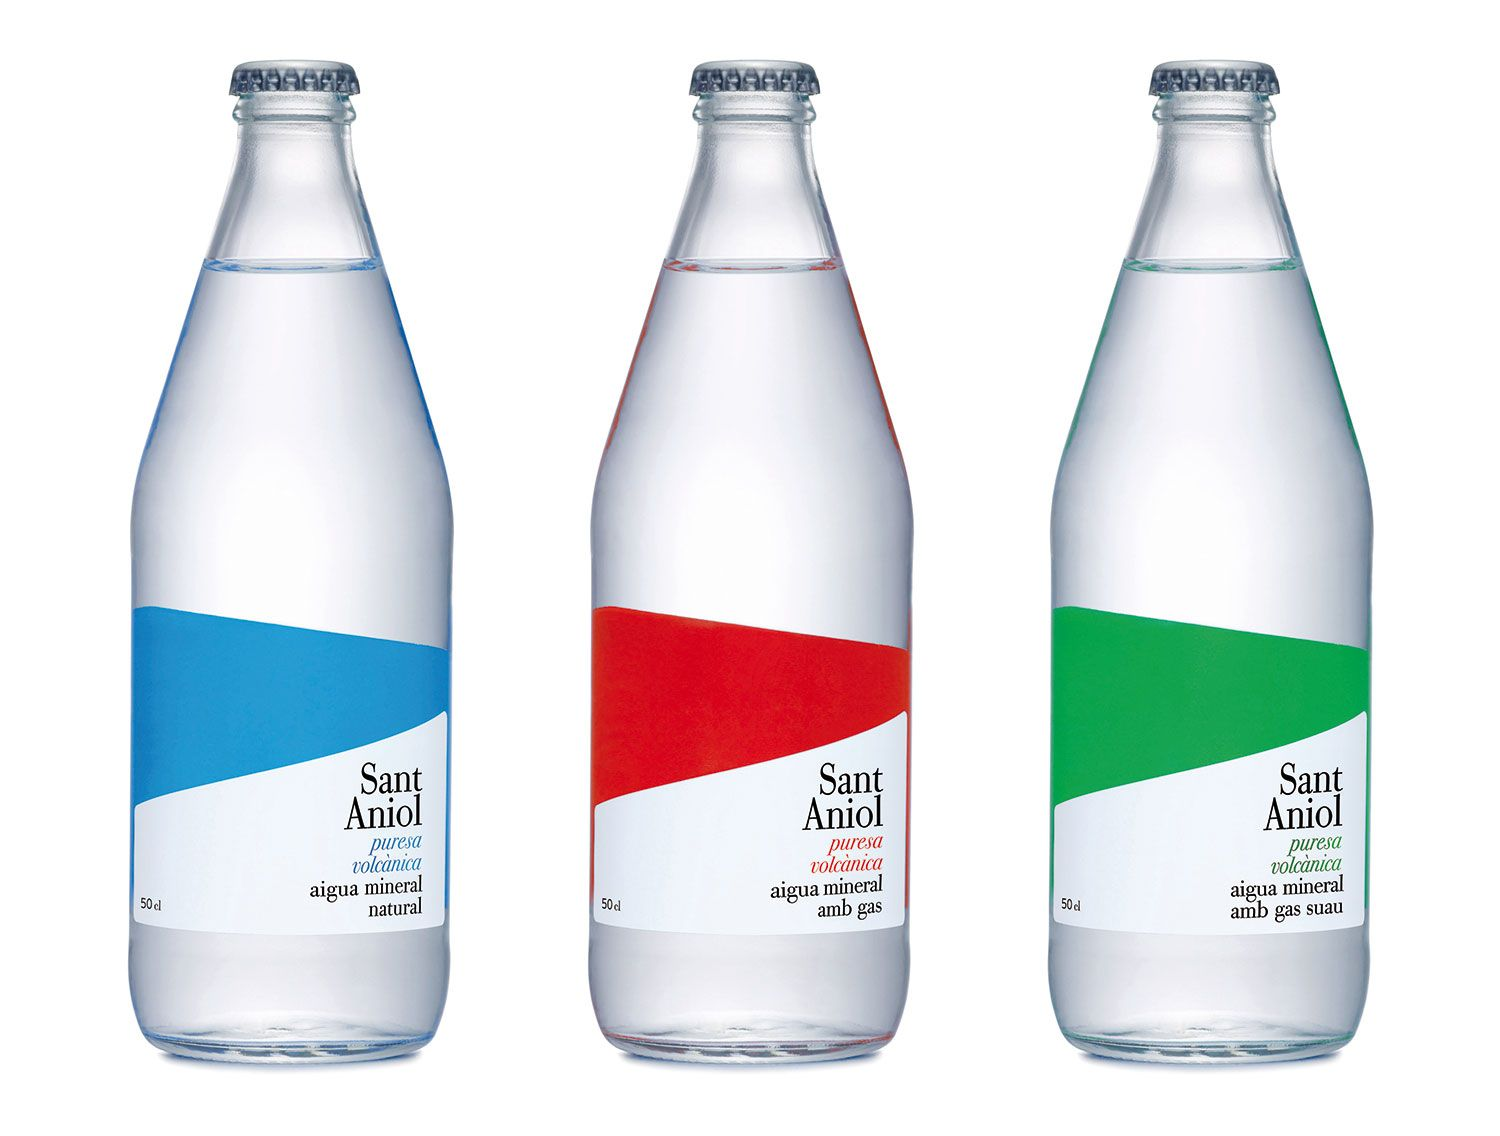 Aigua Sant Aniol Design By Temabcn Poster Logo Packaging